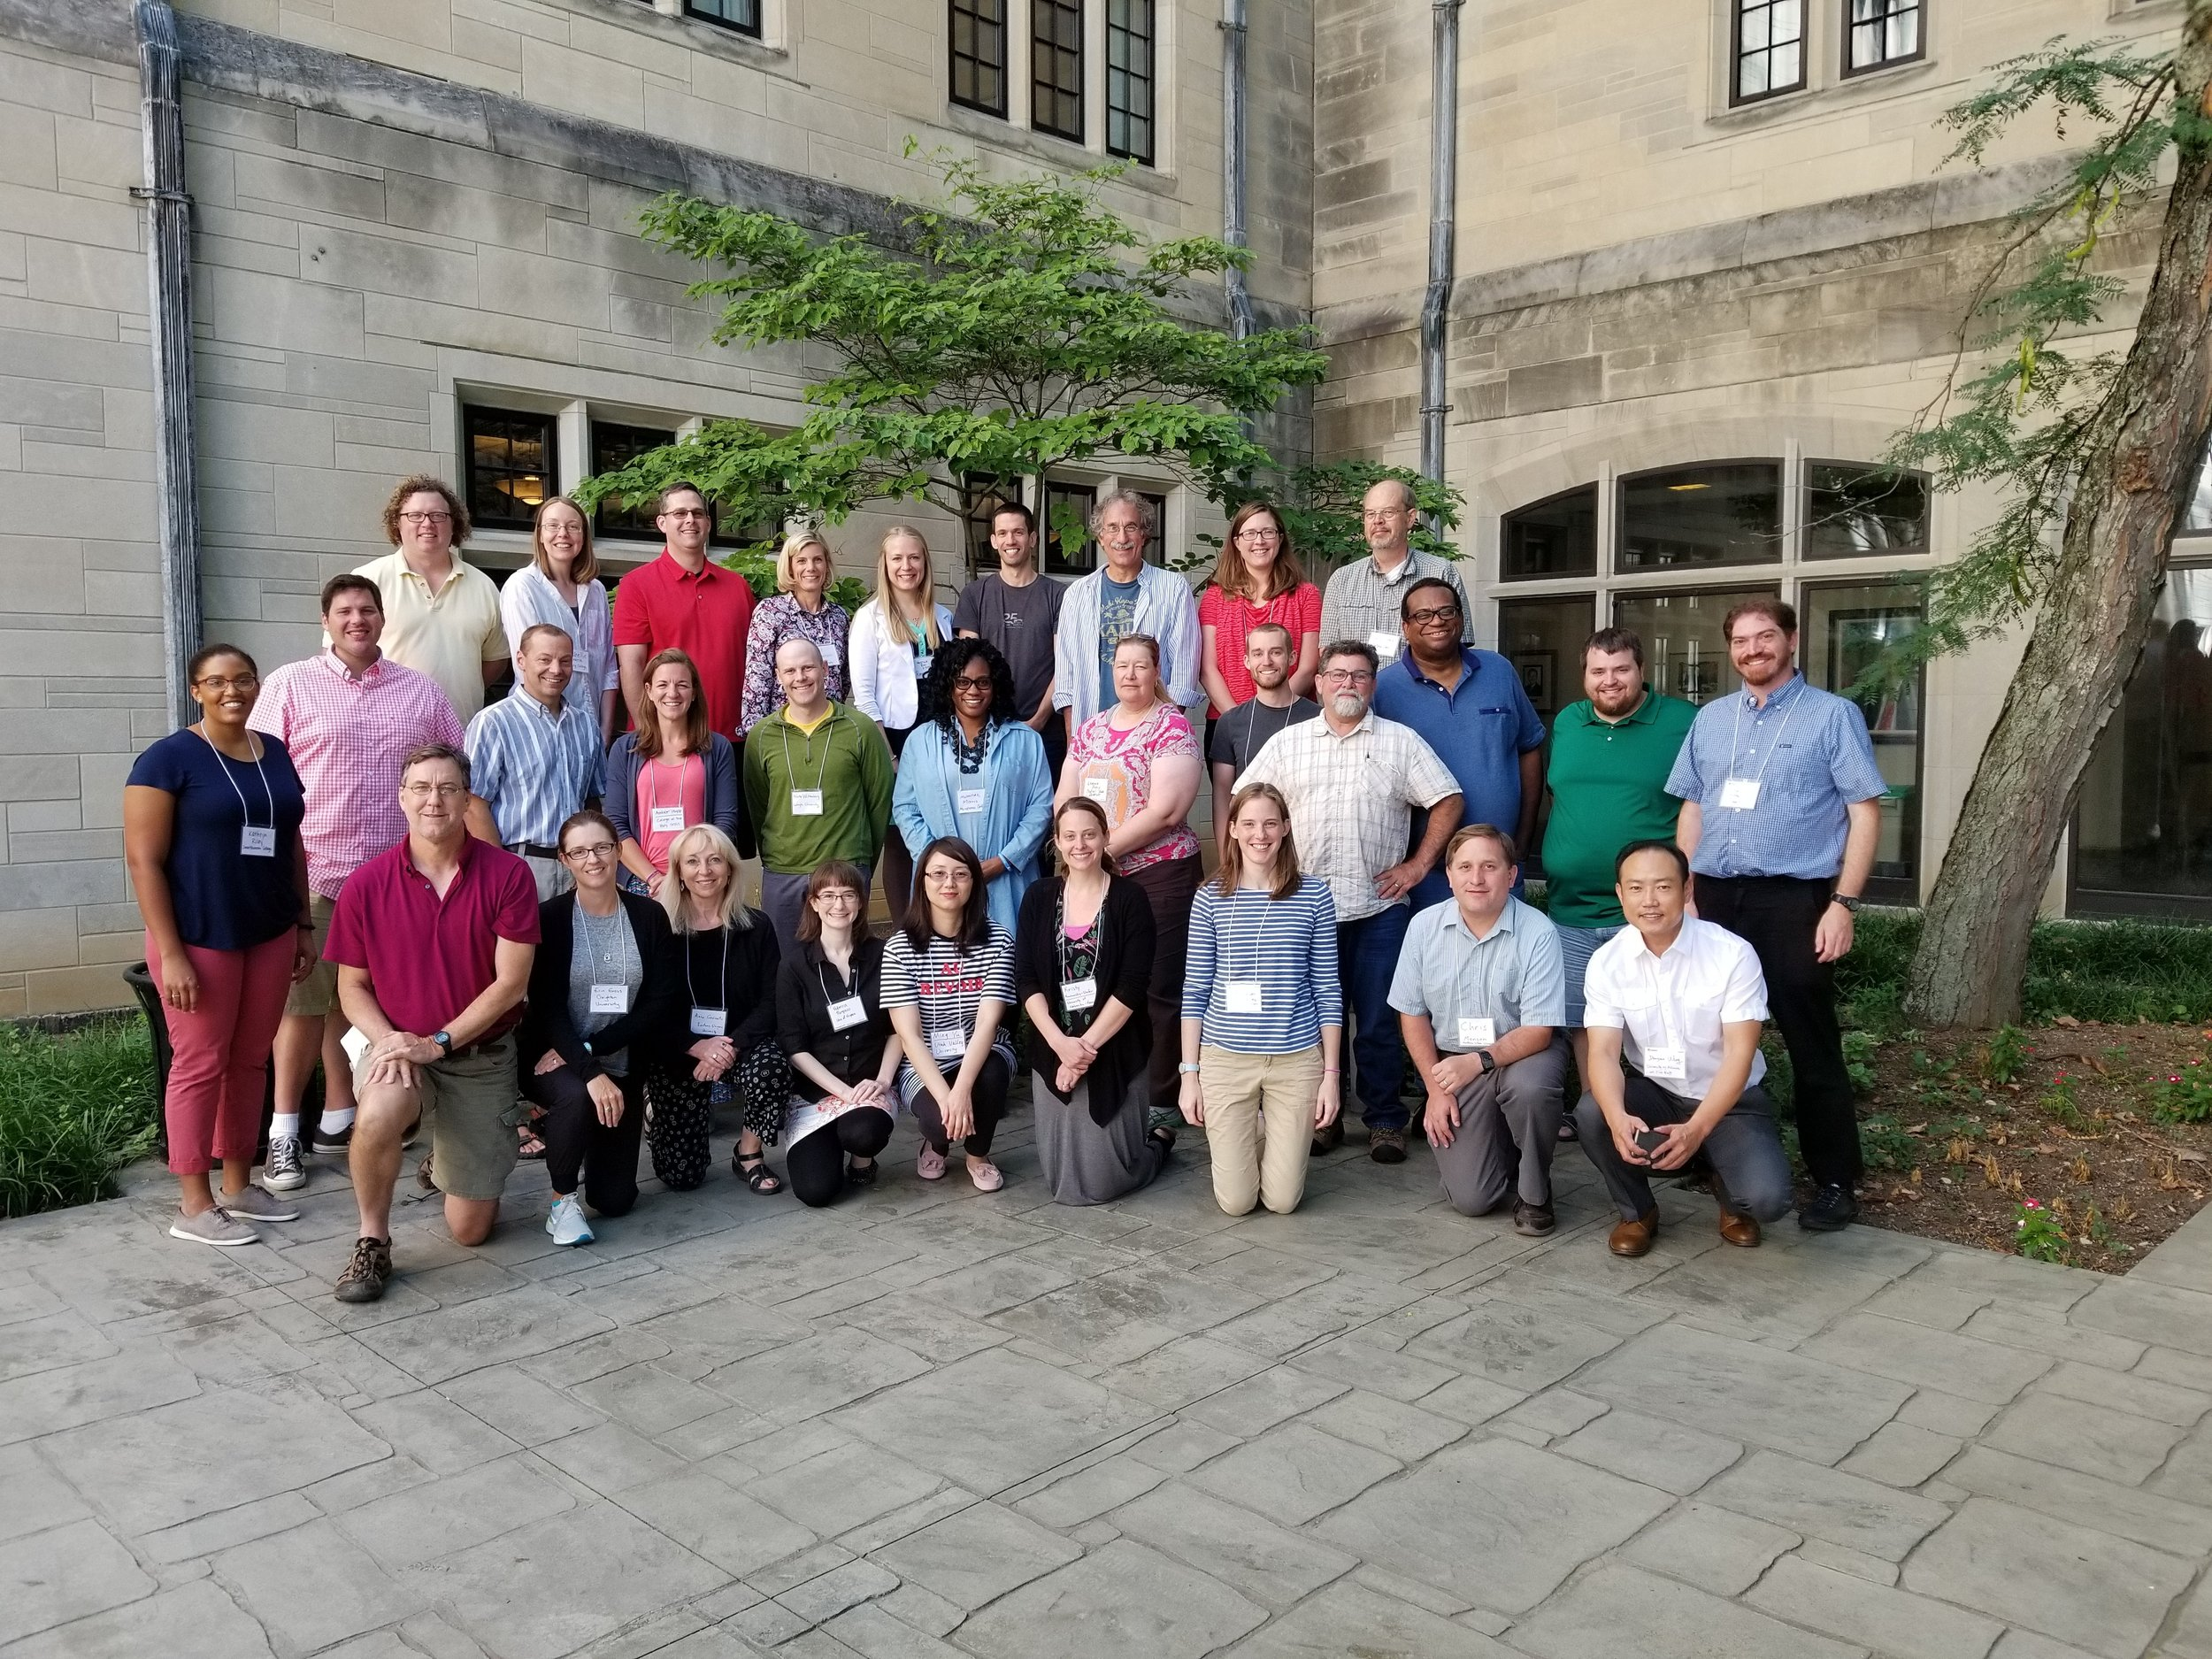 2018_AnalyticalWorkshop_IU_Groupphoto.jpg